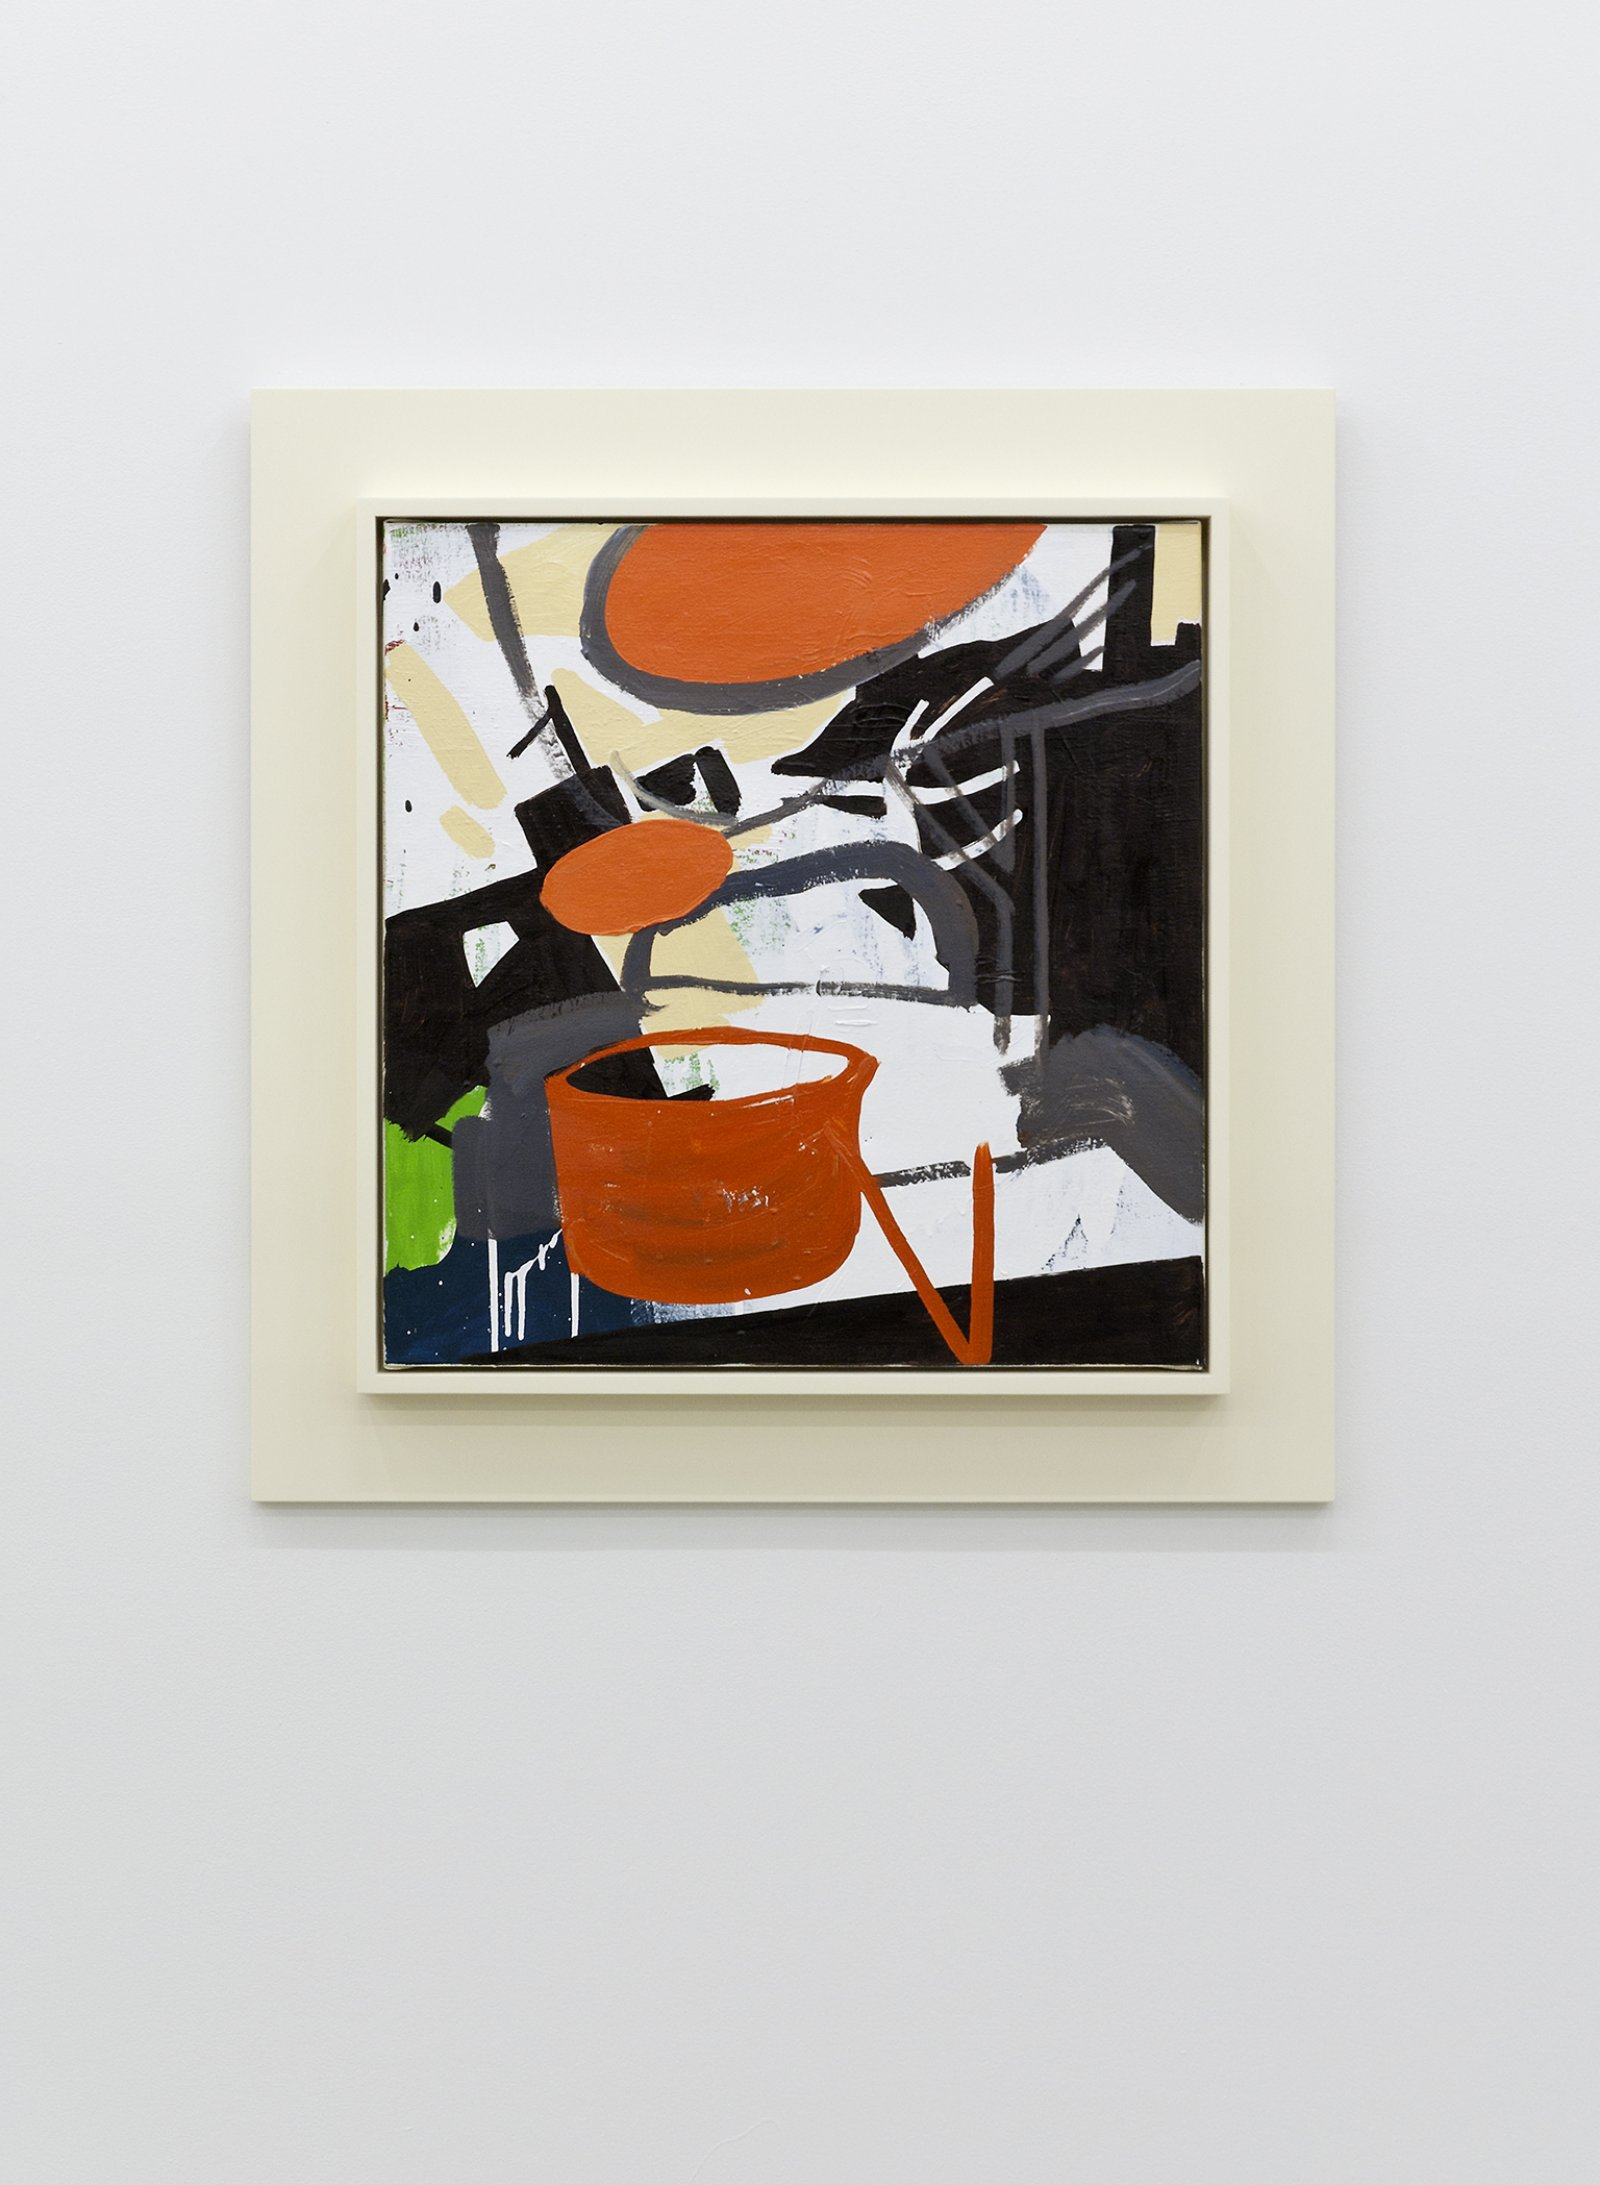 Damian Moppett, Lights in Studio, 2010, oil and enamel on linen and wood frame, 30 x 30 in. (75 x 75 cm) by Damian Moppett